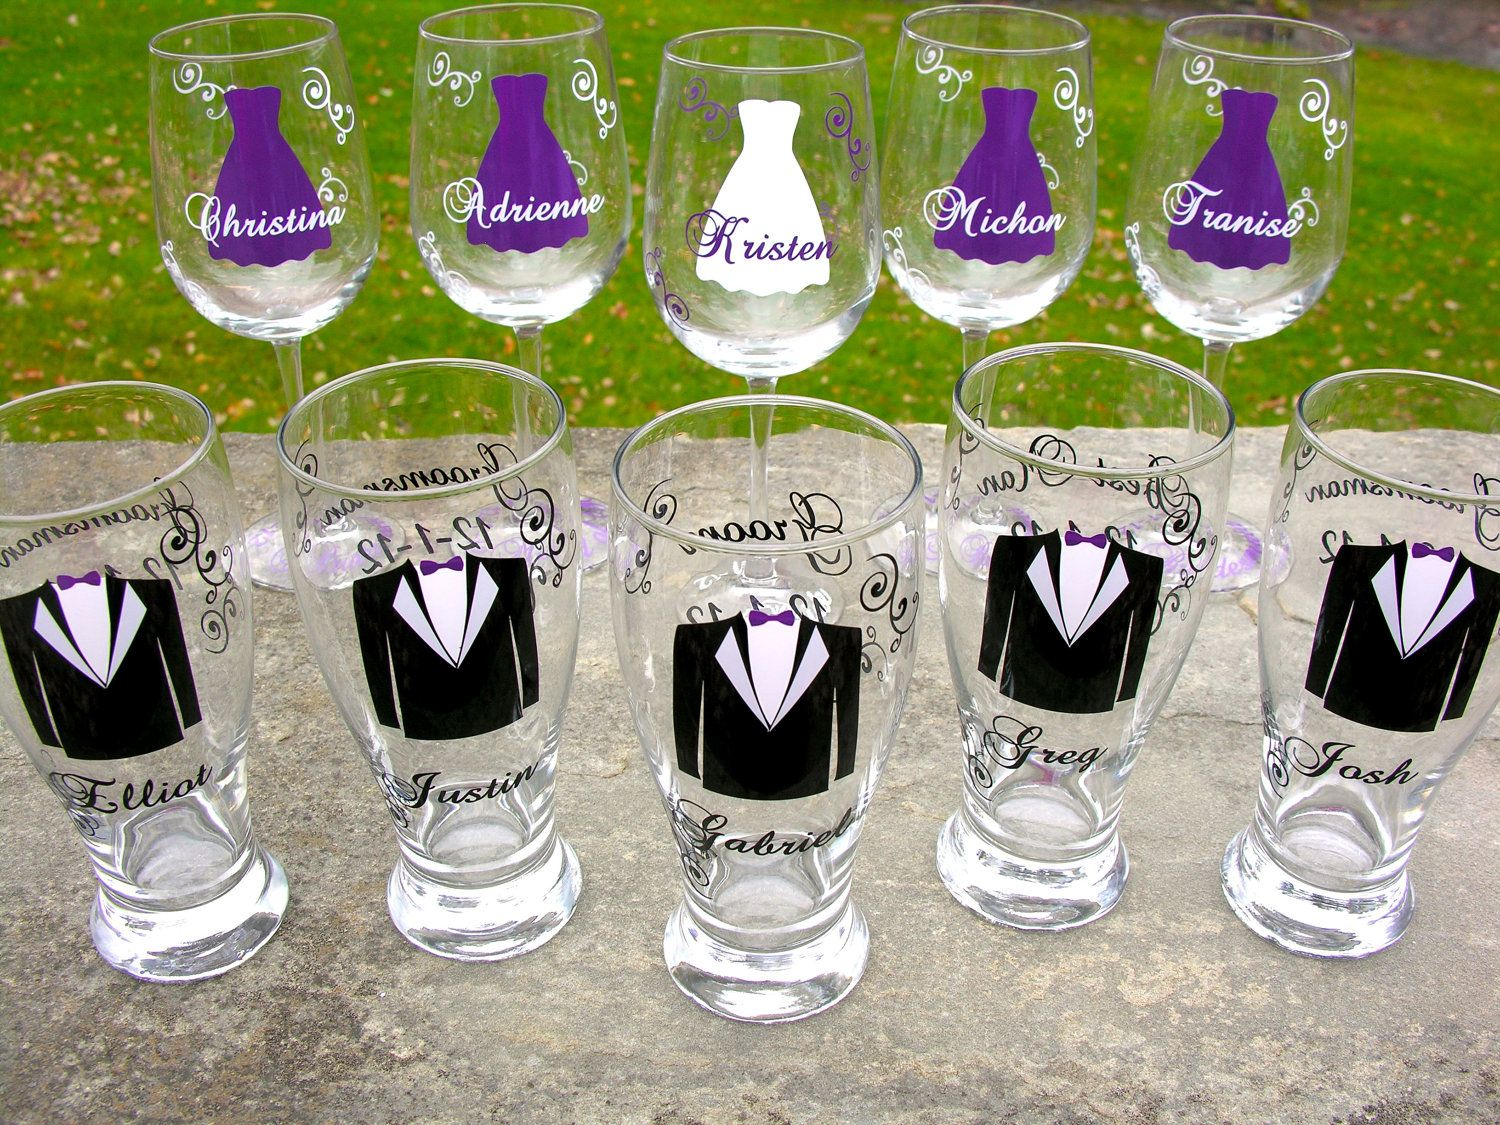 Wedding Party Gles Wine And Beer Pilsner Bridesmaids Groomsman Gifts